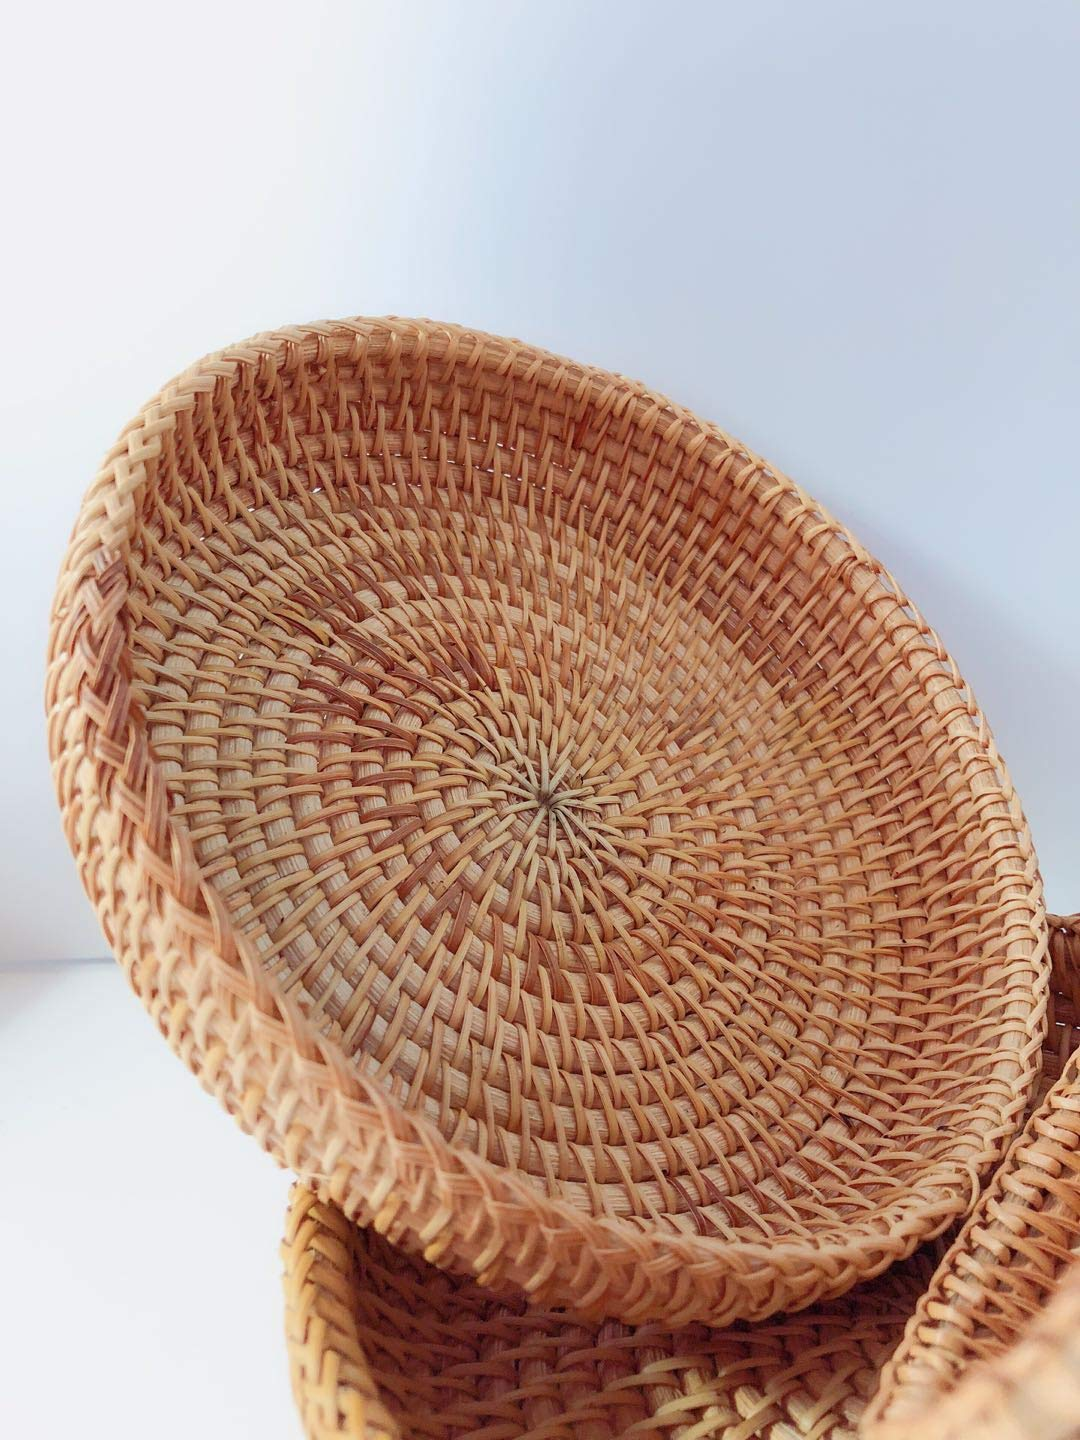 Rattan Basket Dried Fruit Basket Woven Basket Basket For Gifts Fruit Baskets Wicker Picnic Basket Wicker Basket Candy Basket 2019 Organizer Shallow Basket Gift Baskets For Women (2PCs wicker basekt) by TIMESFRIEND (Image #6)